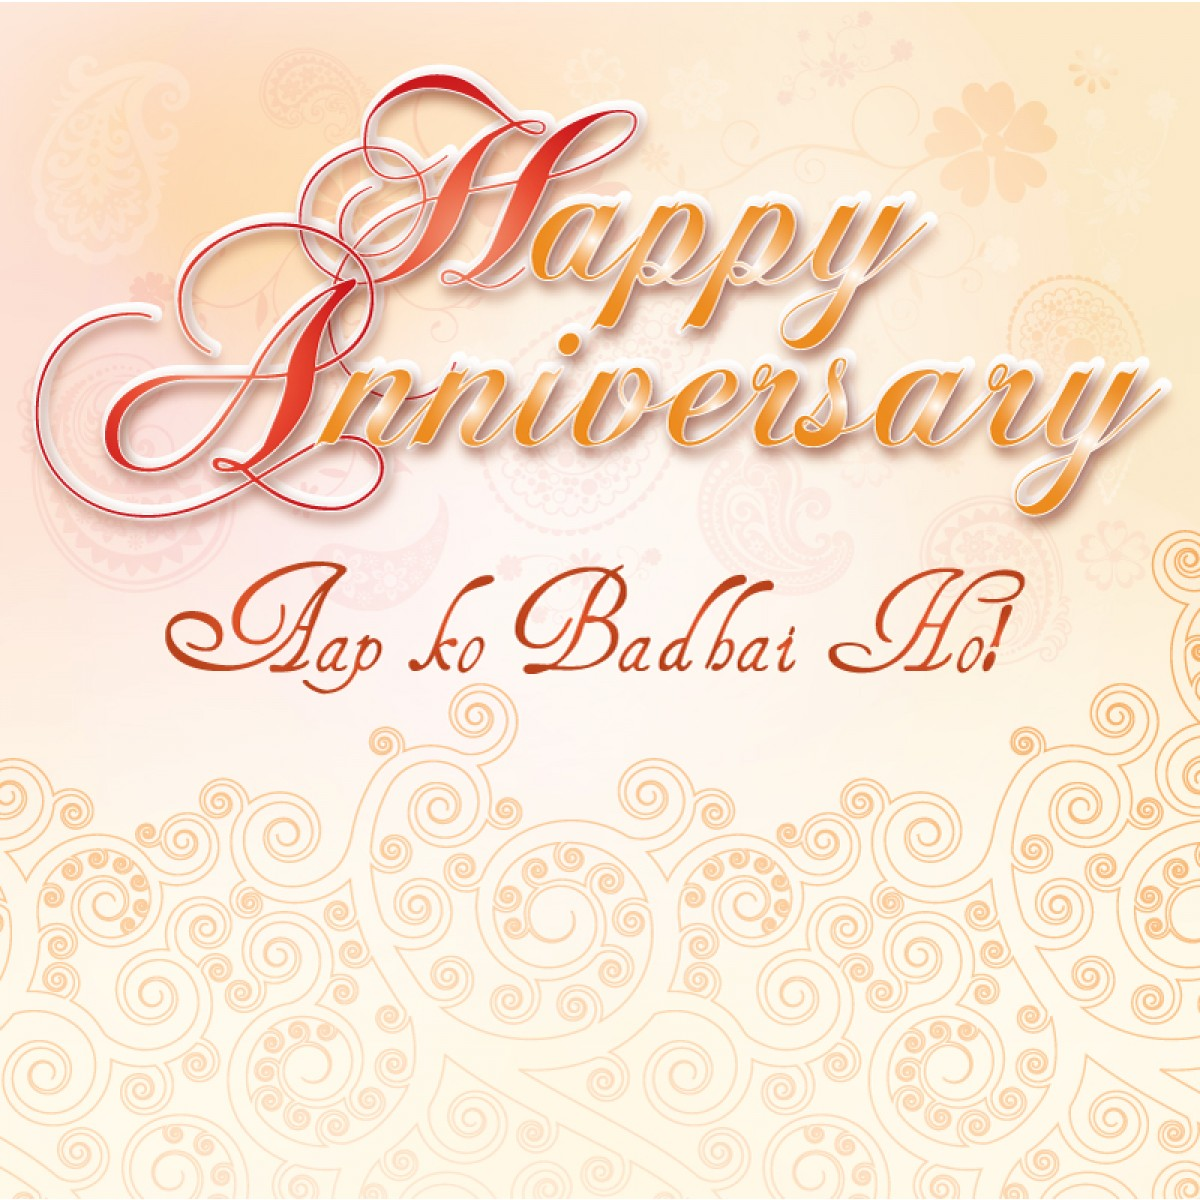 Happy Marriage Anniversary Greeting Cards Wallpapers Free